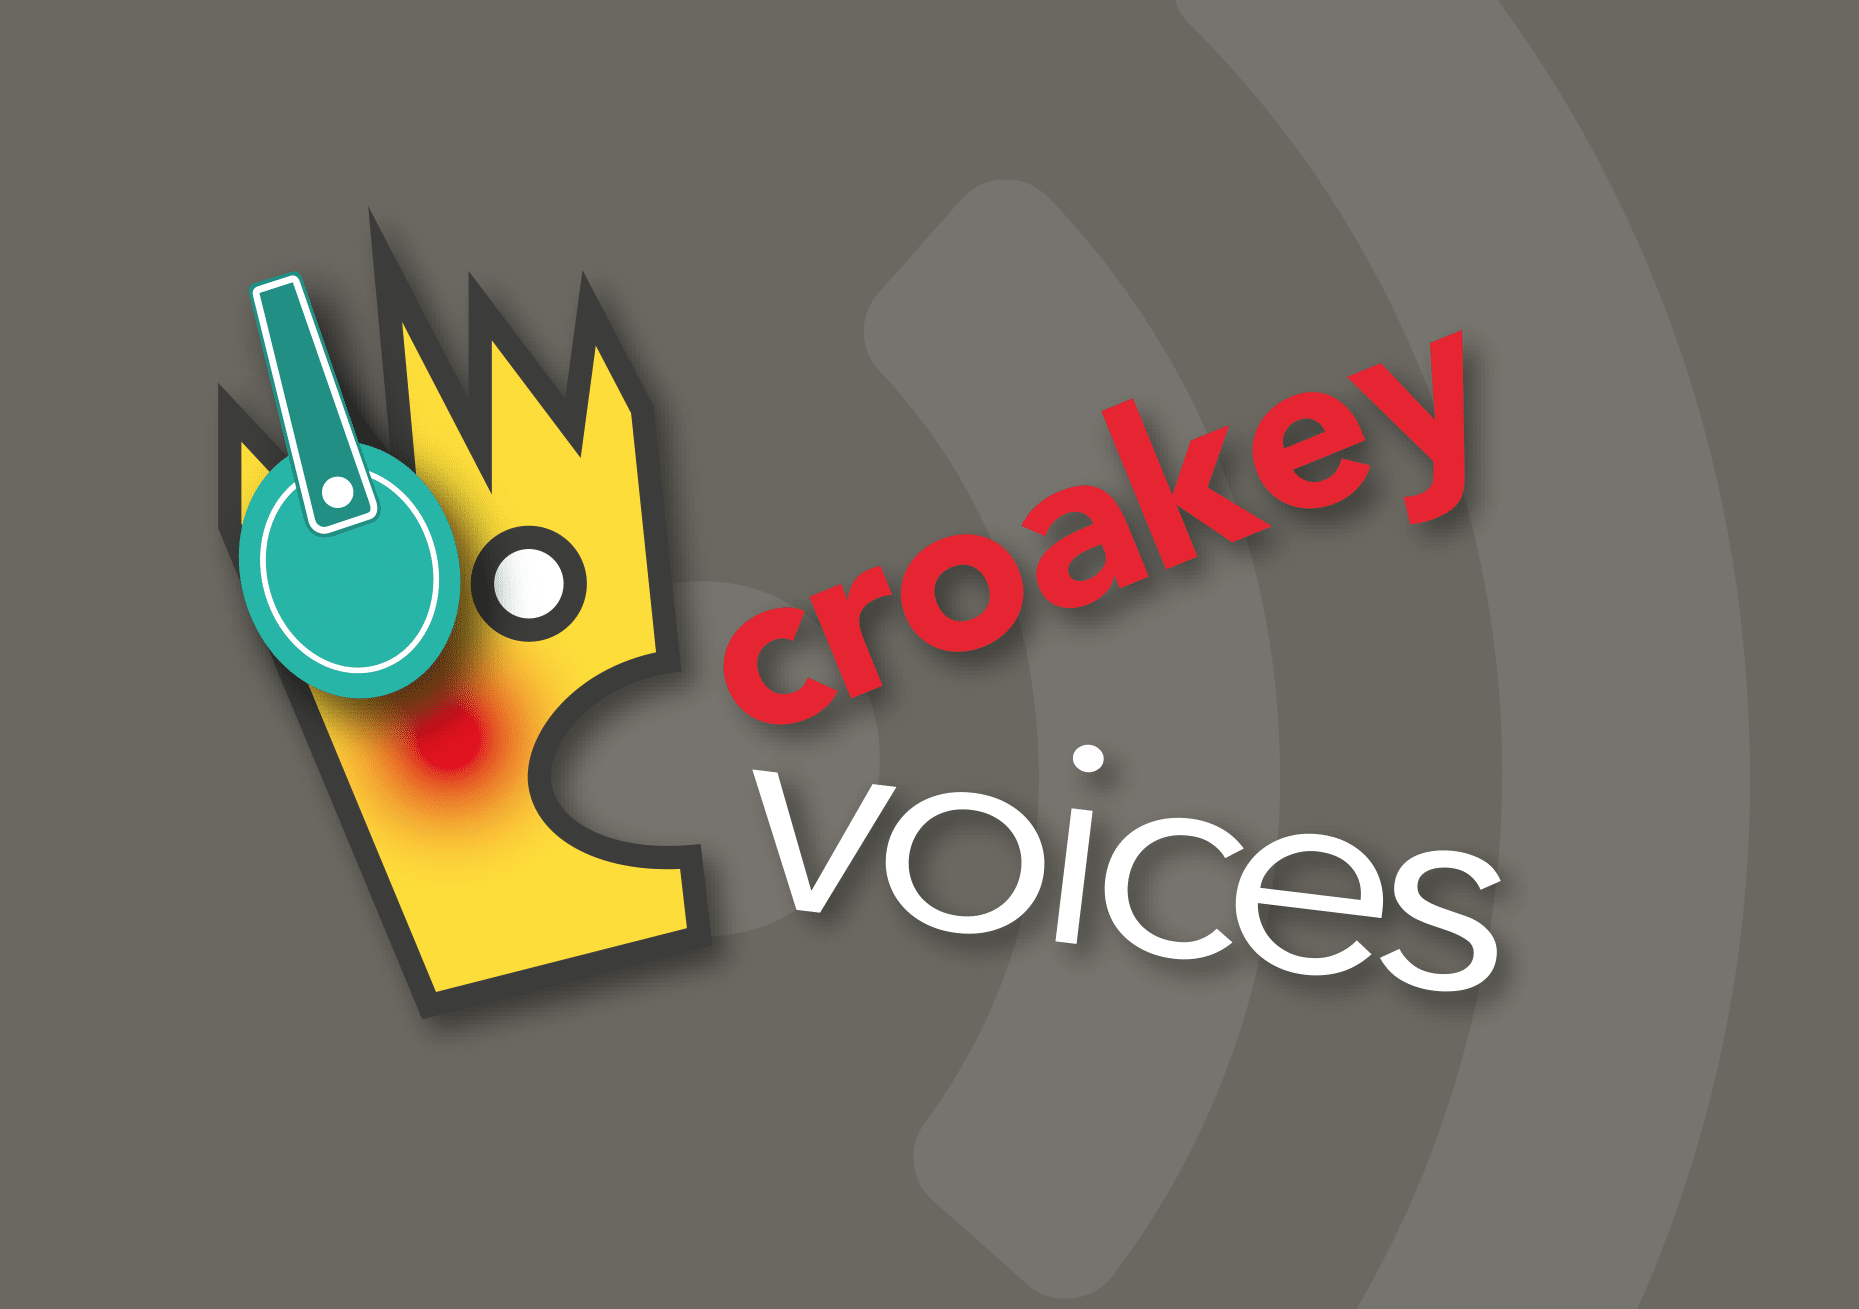 Listen up! It's the second #CroakeyVOICES podcast